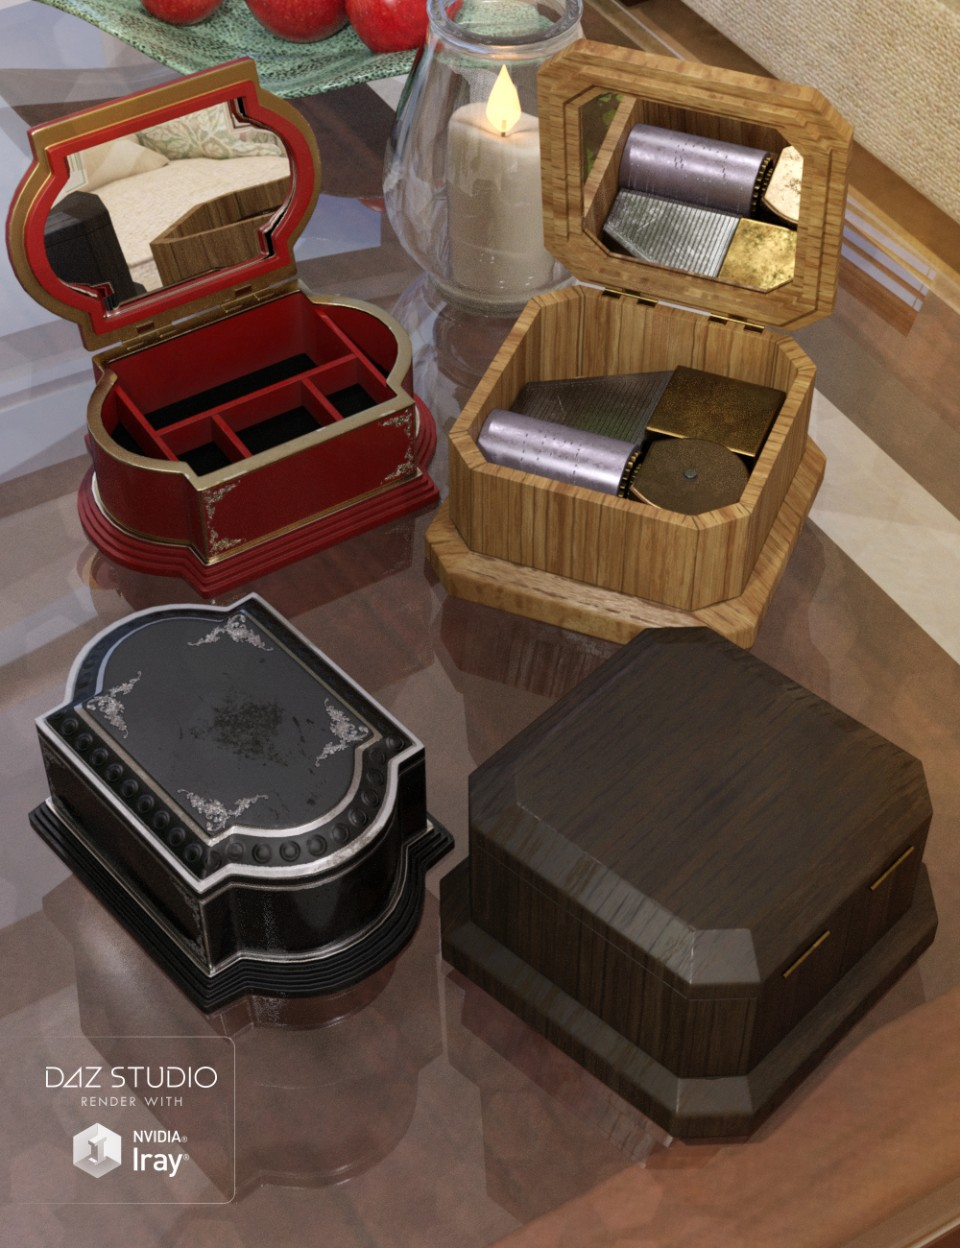 Music and Jewelry Boxes_DAZ3D下载站